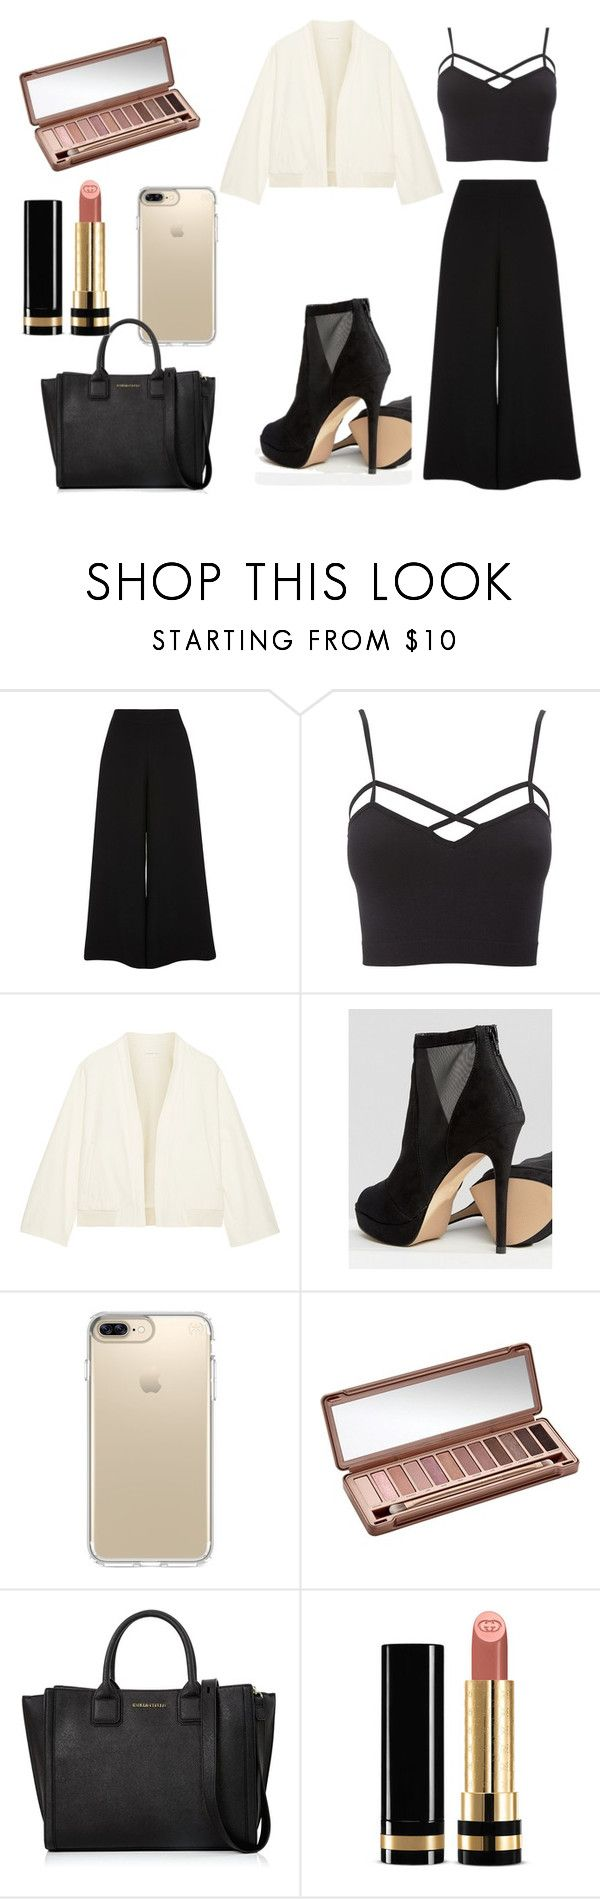 """Untitled #61"" by sara-23-26 ❤ liked on Polyvore featuring River Island, Charlotte Russe, Simon Miller, ALDO, Speck, Urban Decay, Karl Lagerfeld, Gucci and plus size clothing"